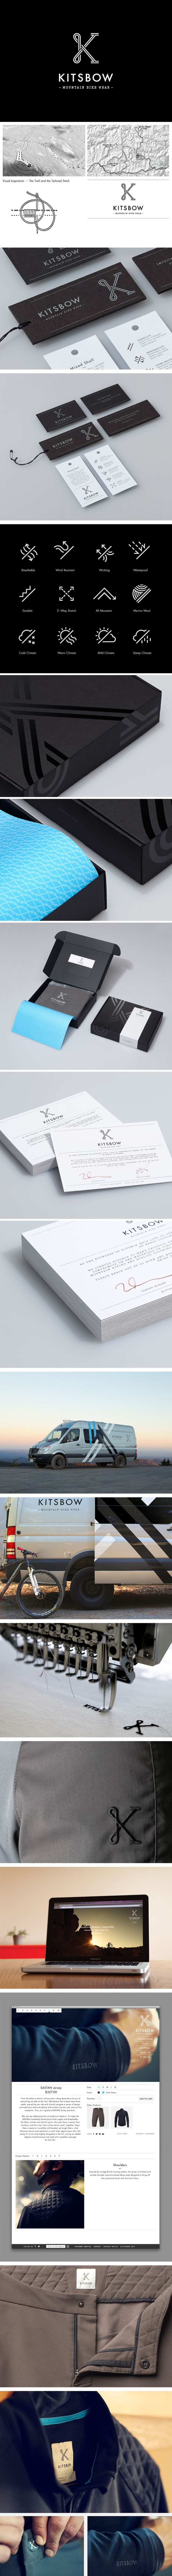 Kitsbow by manualcreative.com #identity #packaging #branding PD